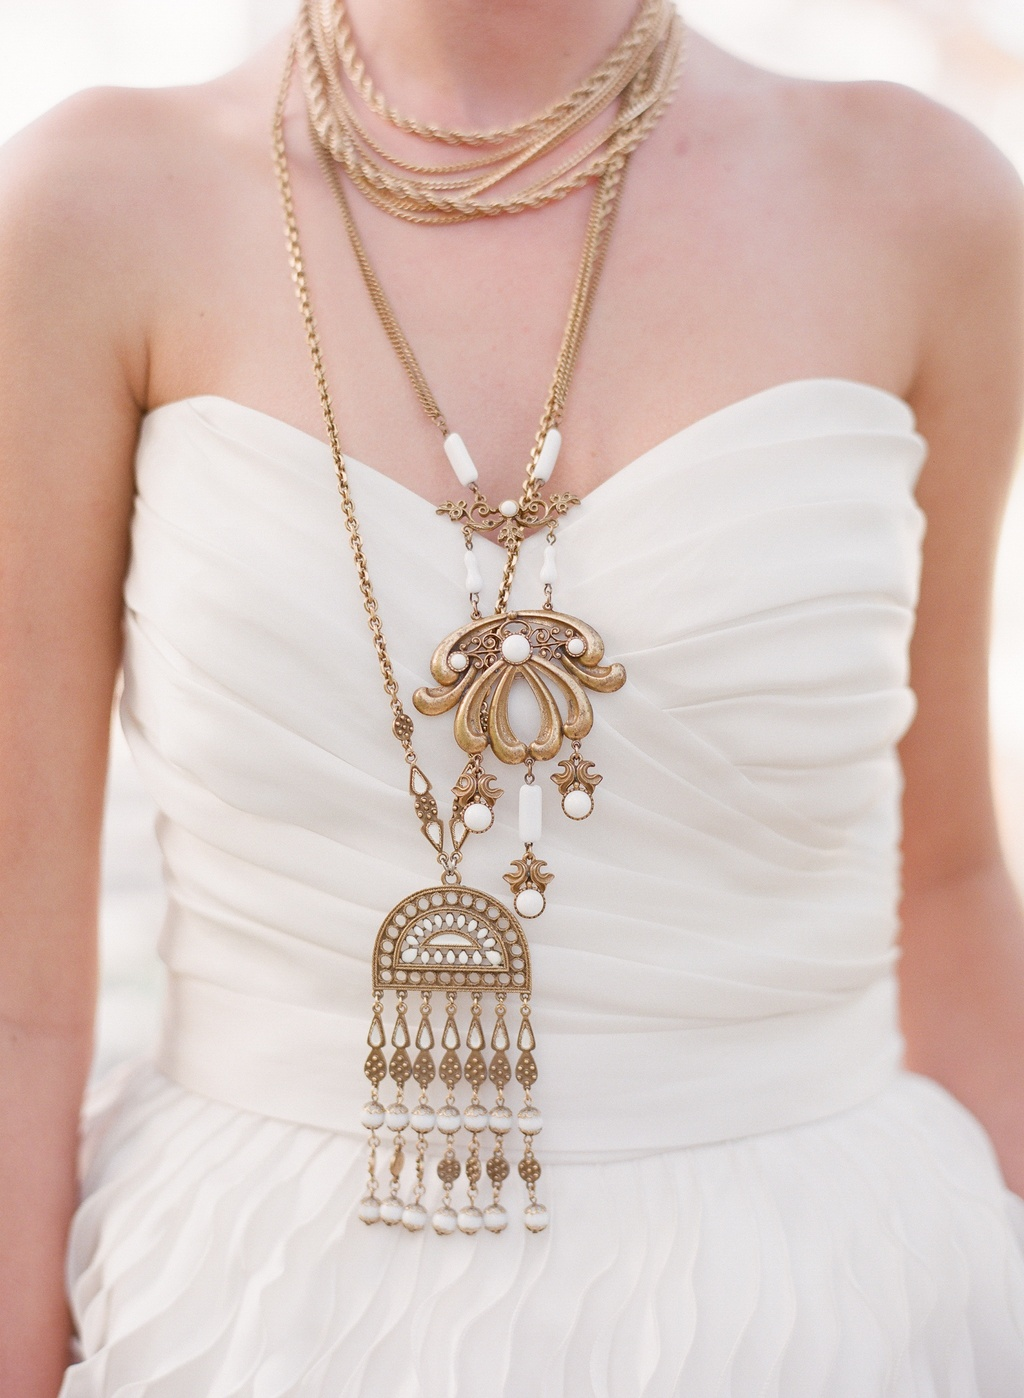 Styled-wedding-beaux-arts-tea-time-monique-lhuillier-santa-barbara-chic-bride-jewelry-gold-296.full